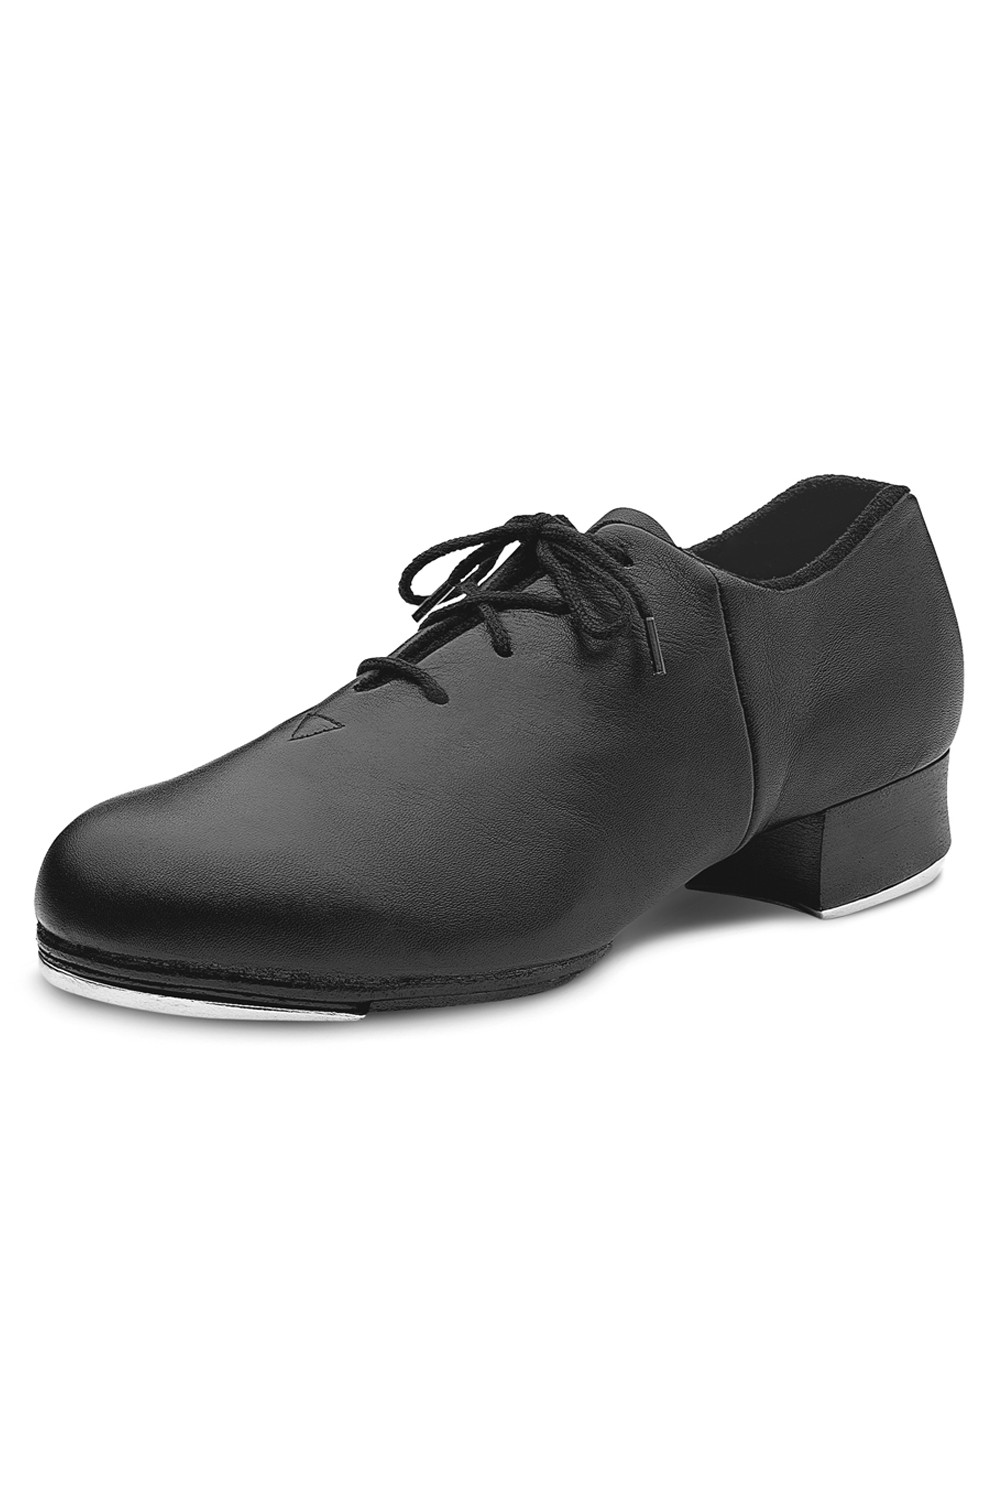 Tap-flex - Homme Men's Tap Shoes